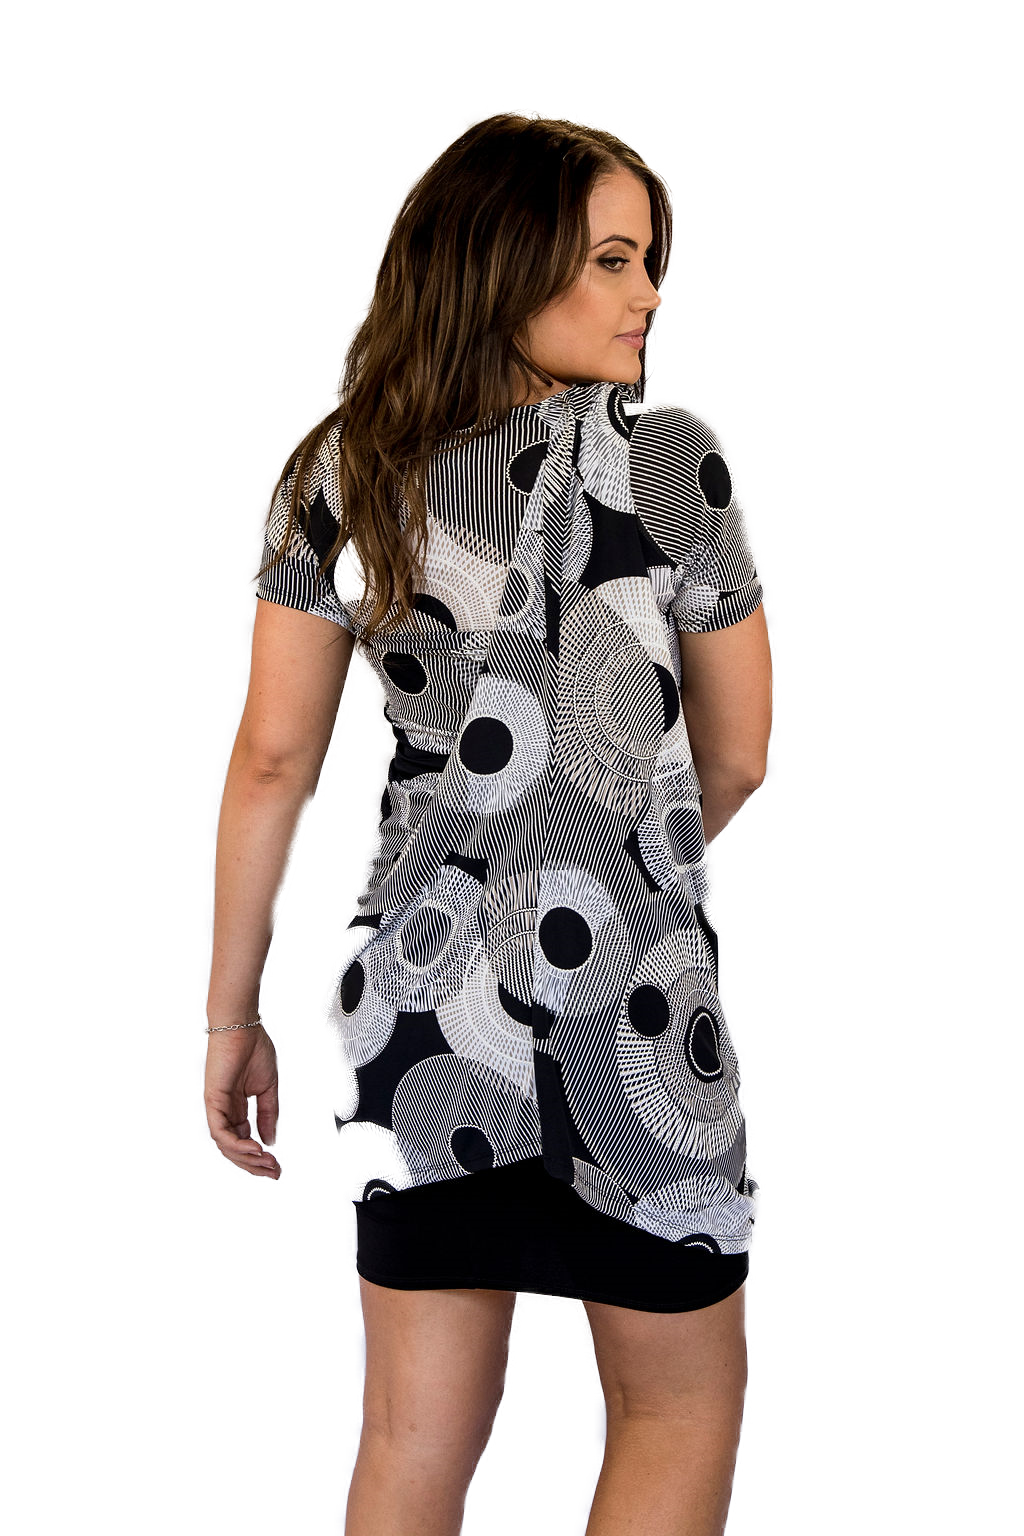 sallyannelyonscreativeclothingsolutionsforwomen2019_136_InPixio.png